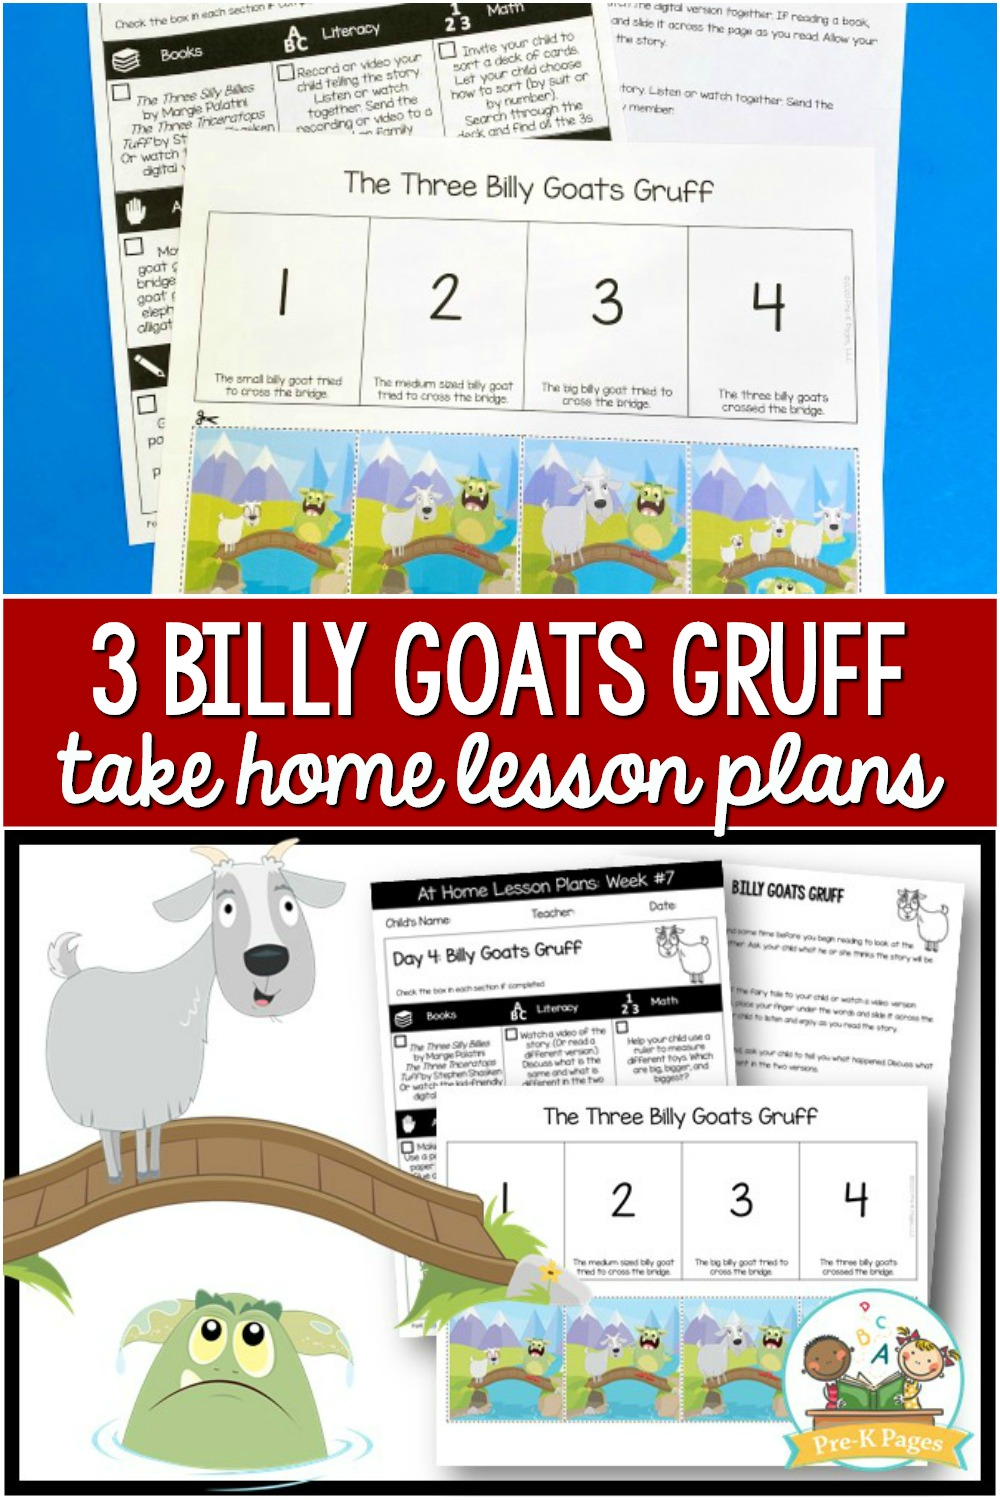 3 Billy Goats Gruff Lesson Plans